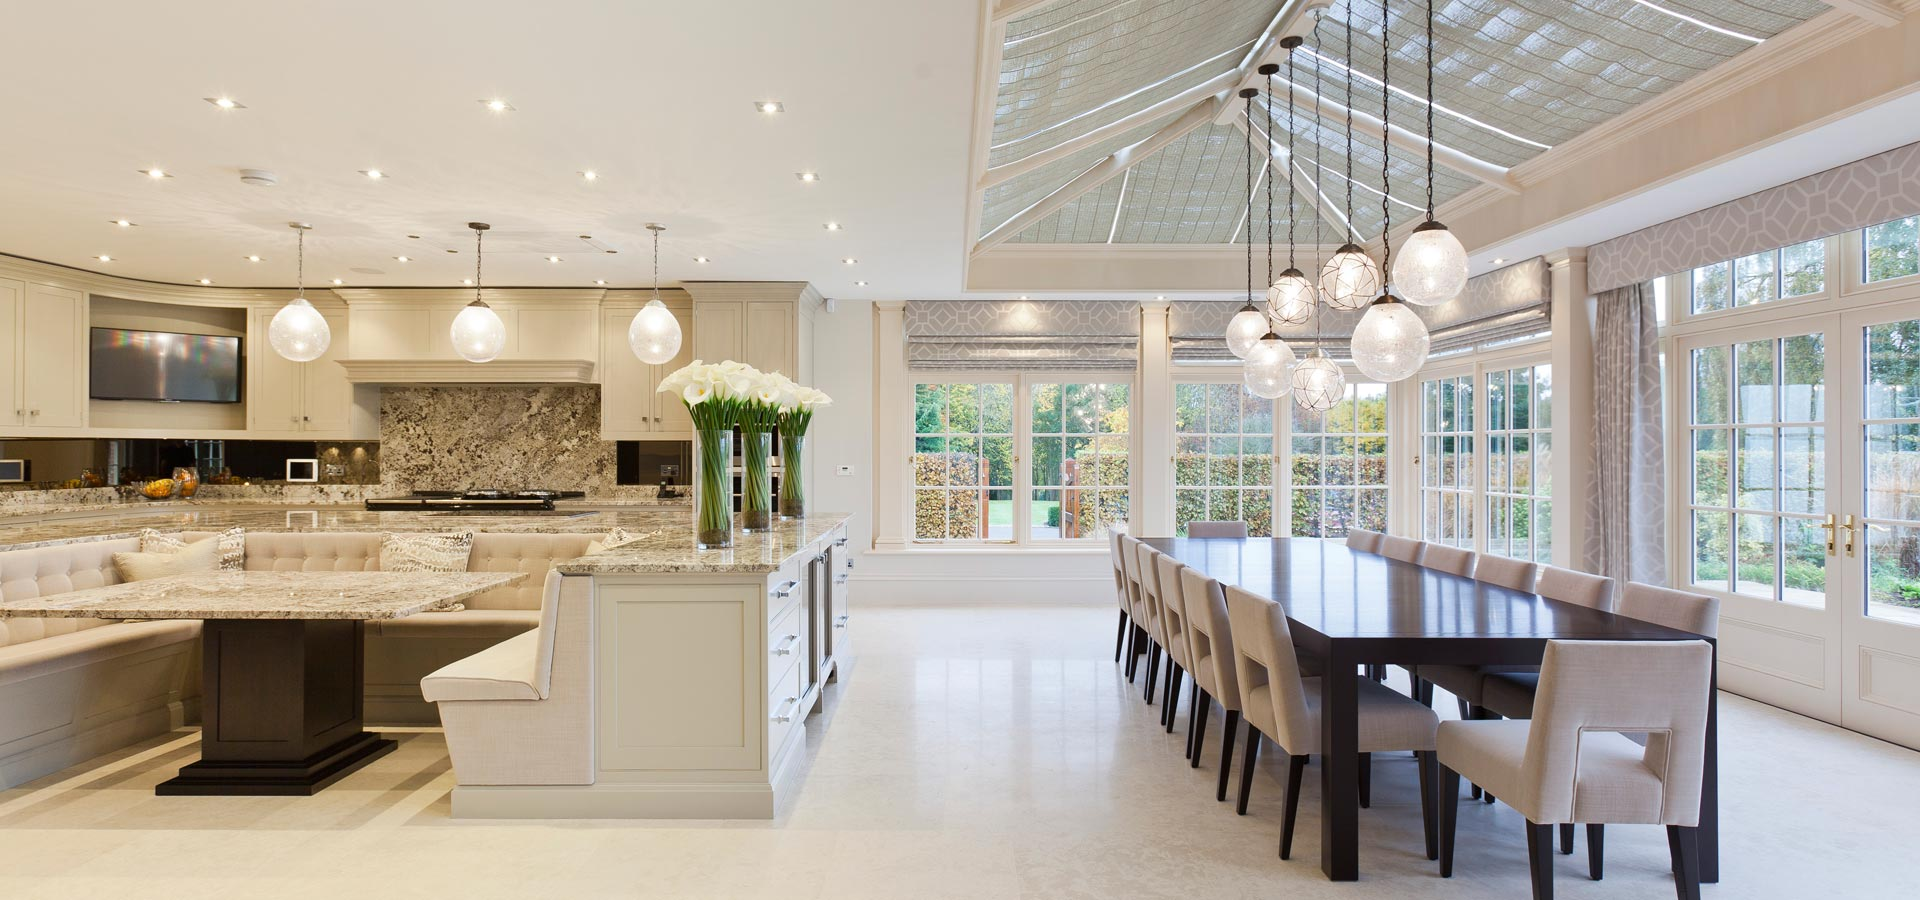 Using your conservatory view case study interior of a open planned kitchen conservatory perfect for a busy family life mozeypictures Image collections